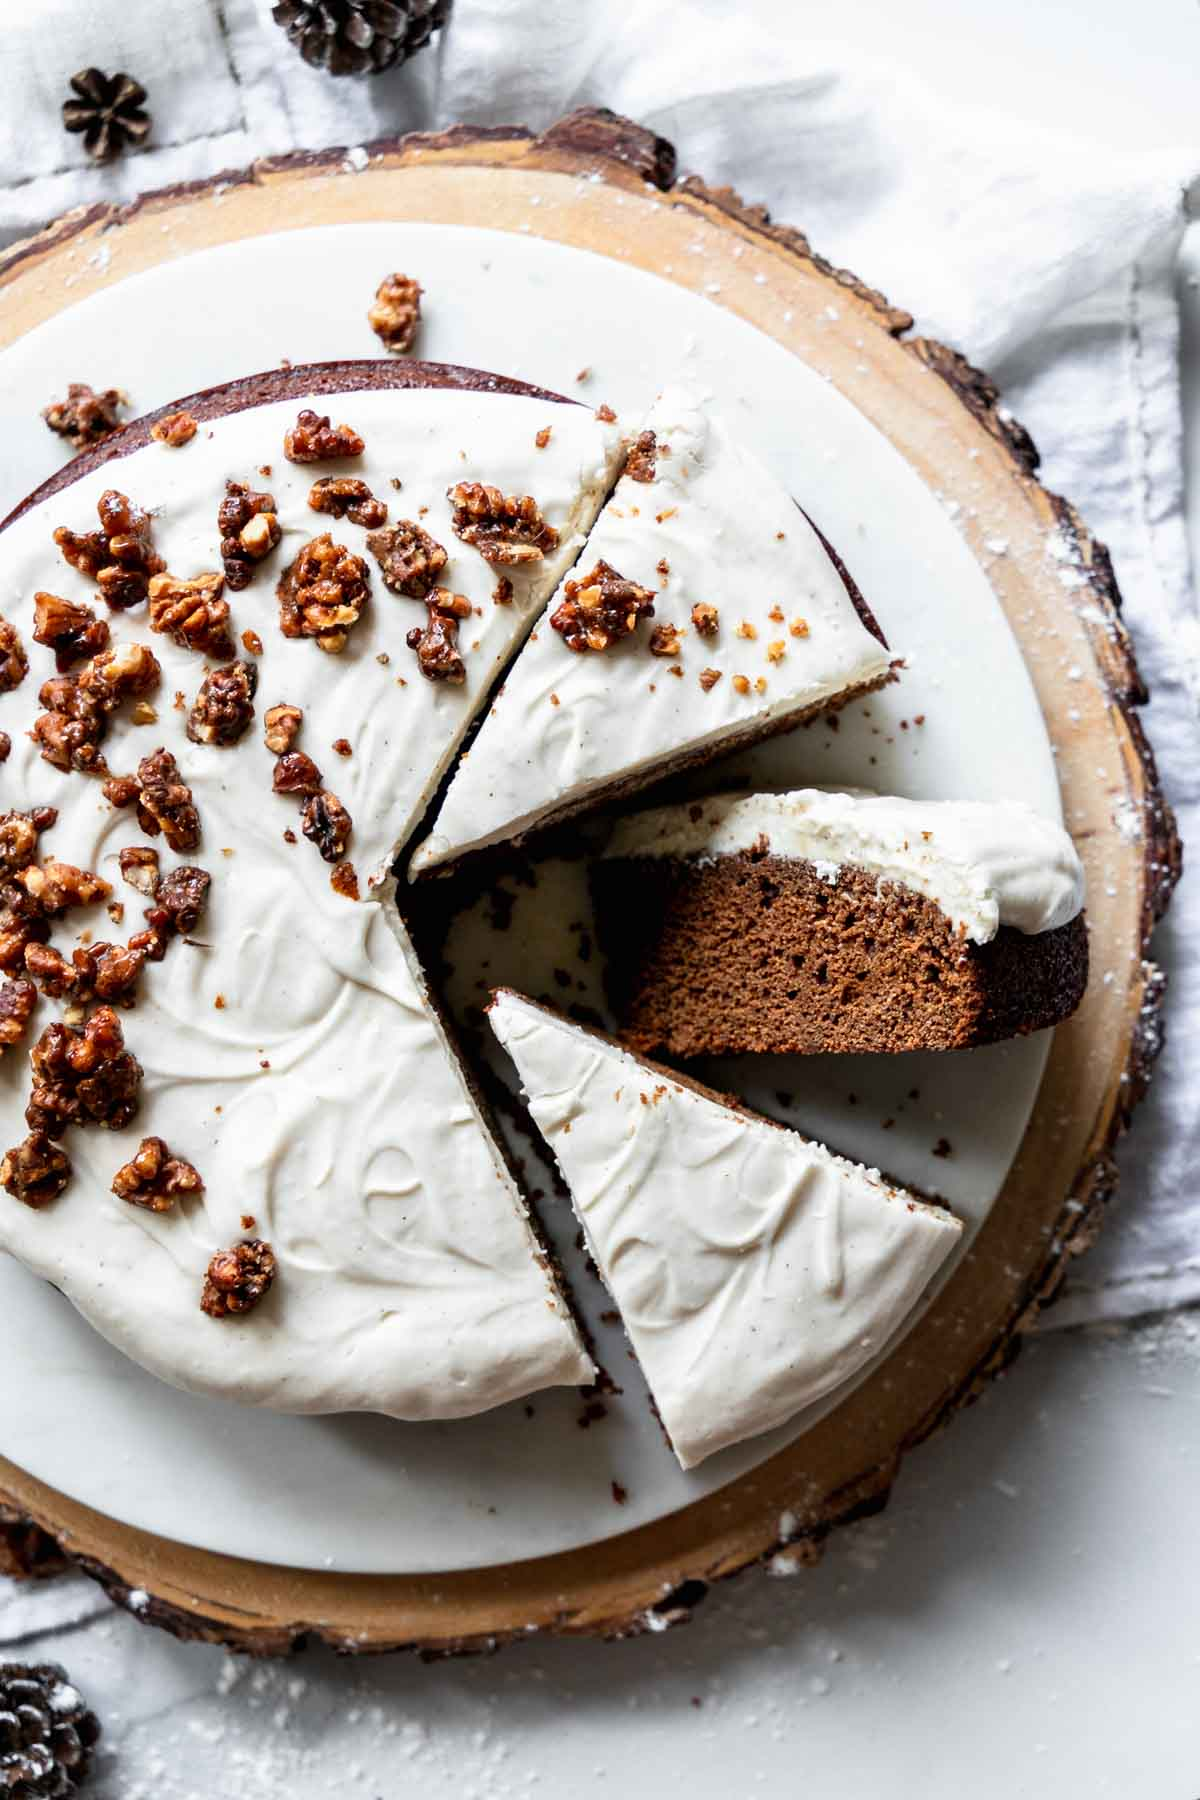 Single Layer Gingerbread Cake with Cream Cheese Frosting - a rich gingerbread with coffee in the batter for deep flavor!